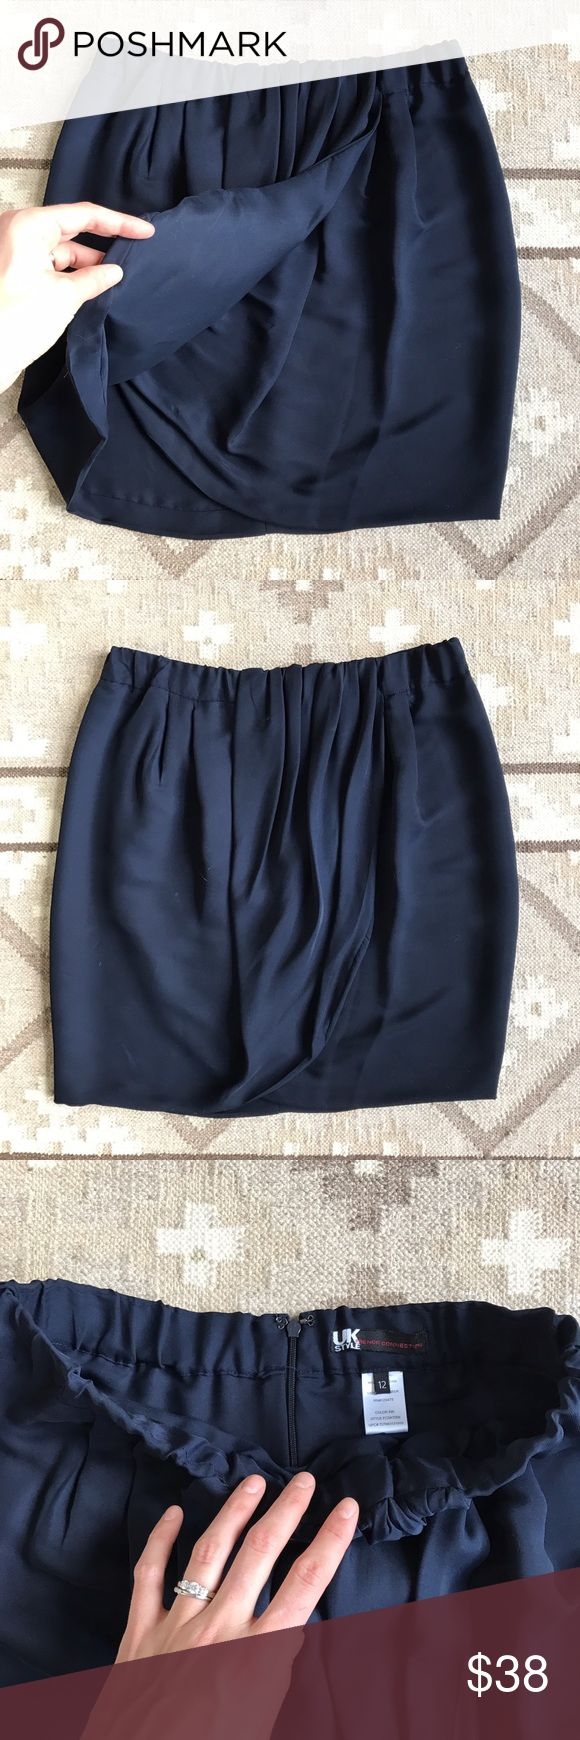 French Connection UK Style Navy Wrap Skirt Elastic banded waist. Tiny pin hole where the layers come together, as it was bobby pinned but is not noticeable unless you search for it. French Connection Skirts Mini